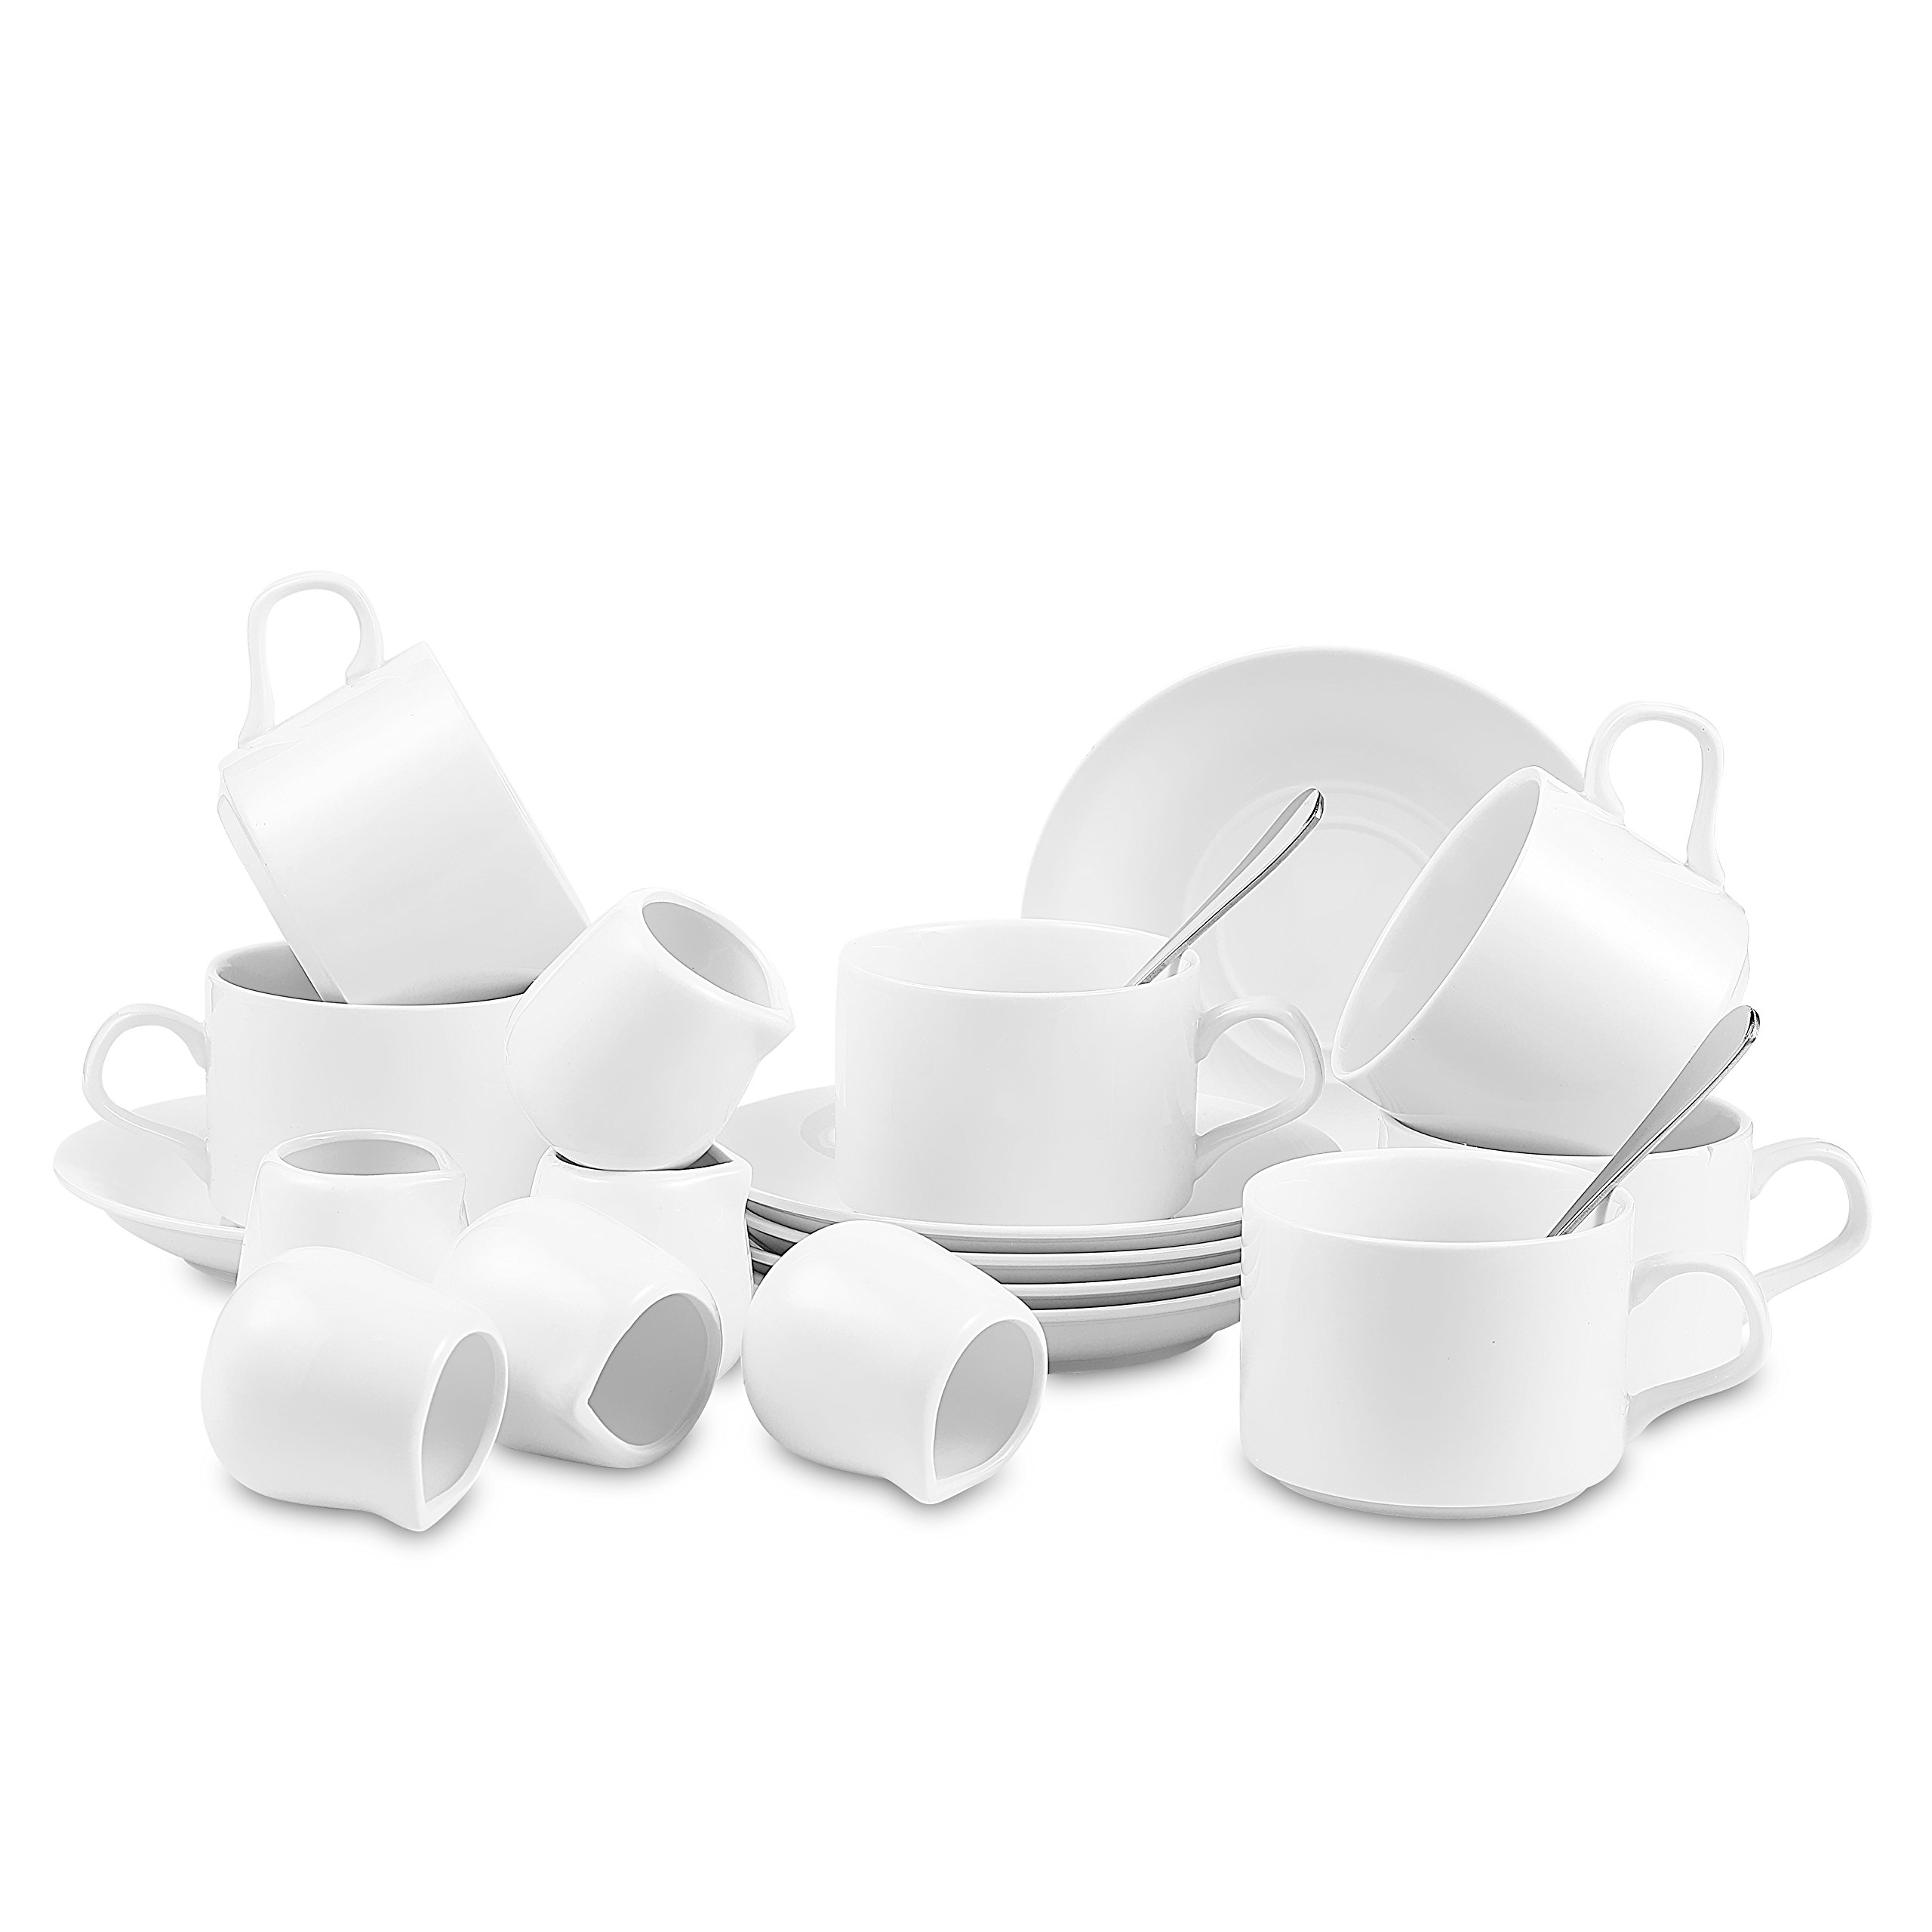 Nucookery White Coffee, Espresso & Tea Cup Saucer Set with Silver Metal Spoon, 6pc Serving Kit(1 Set)